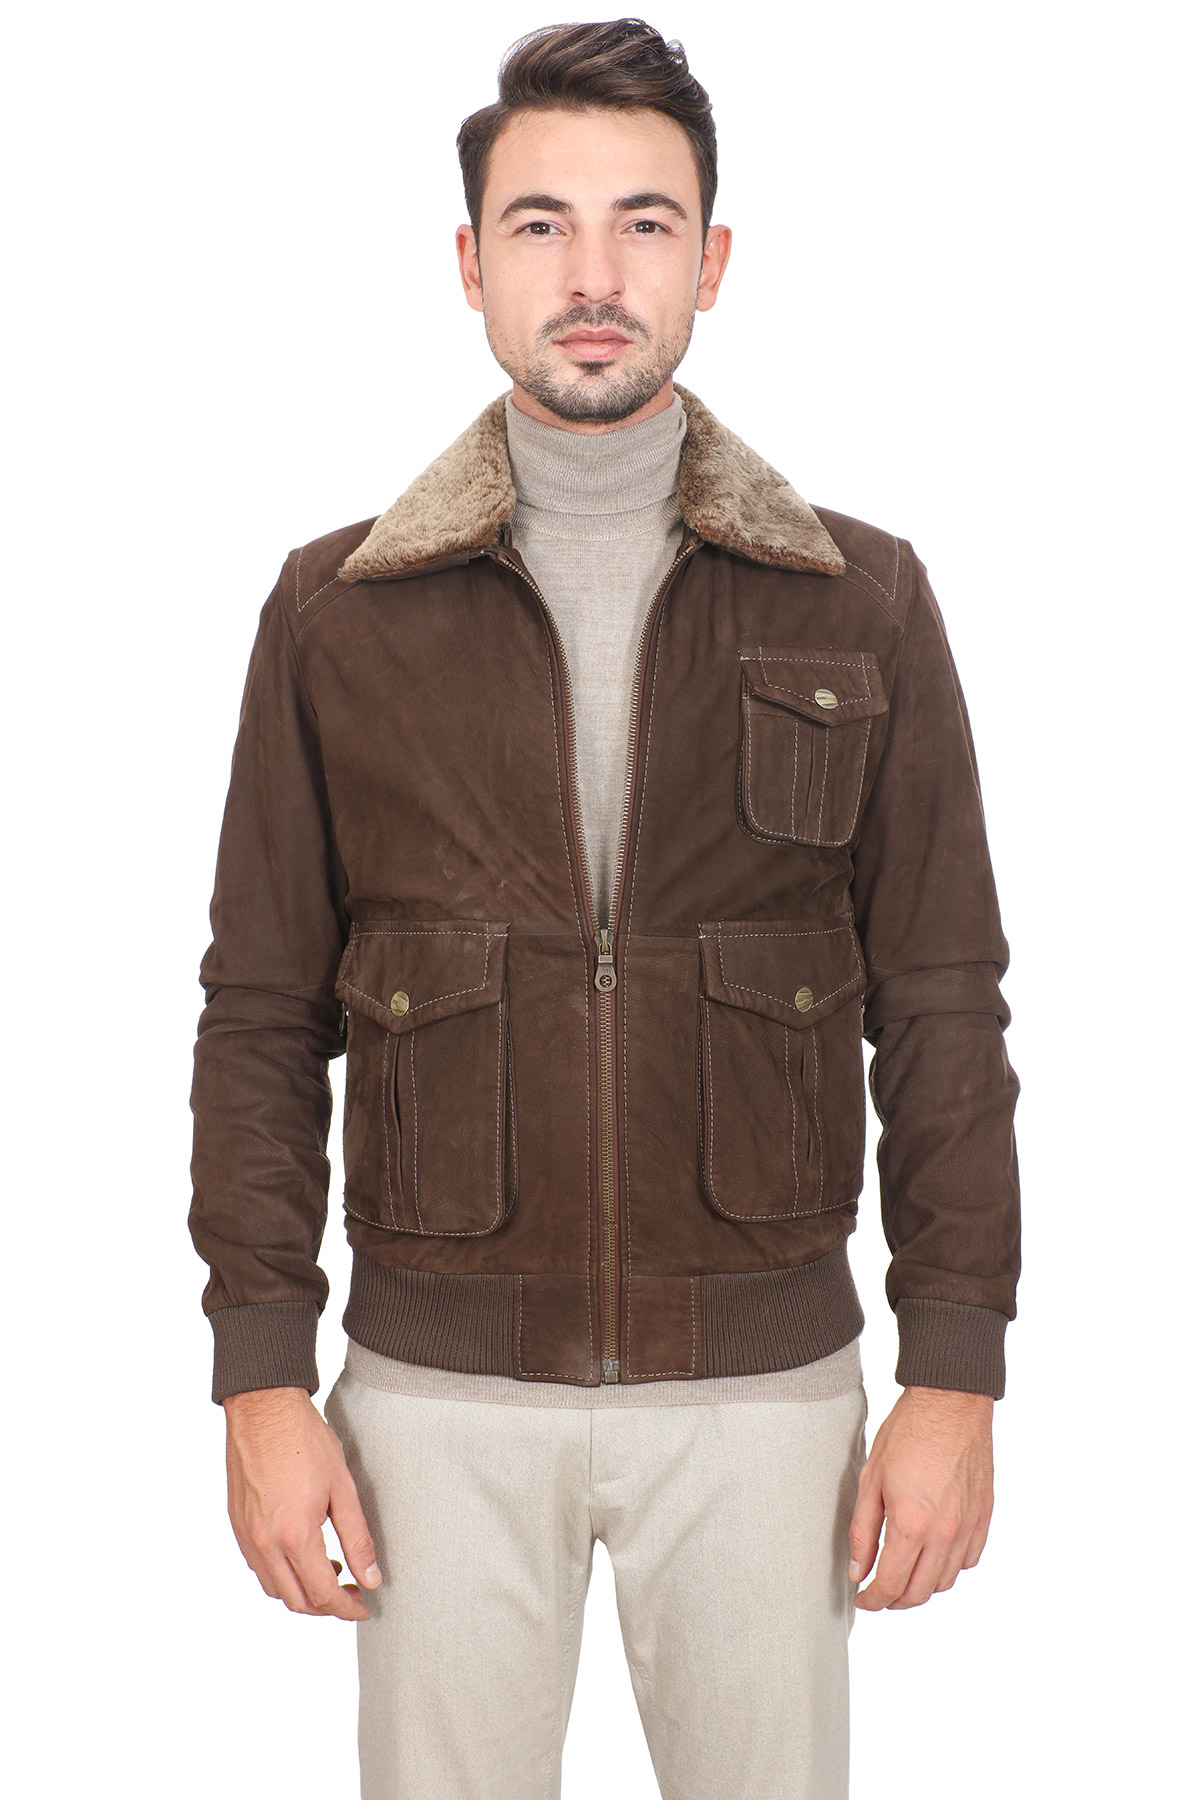 Cheap Brown Leather Jacket